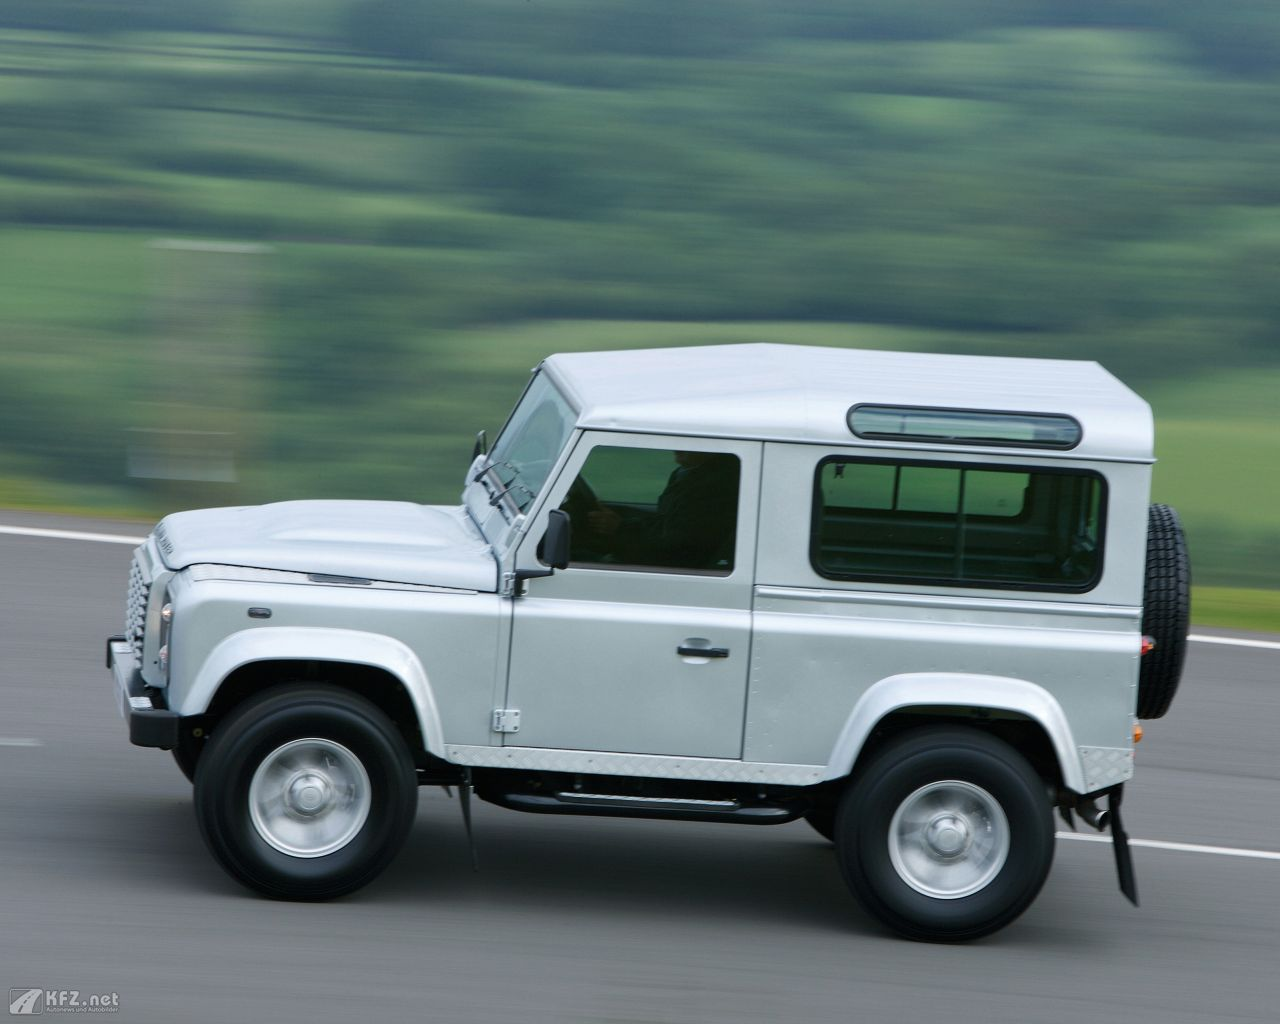 land-rover-defender-1280x1024-19